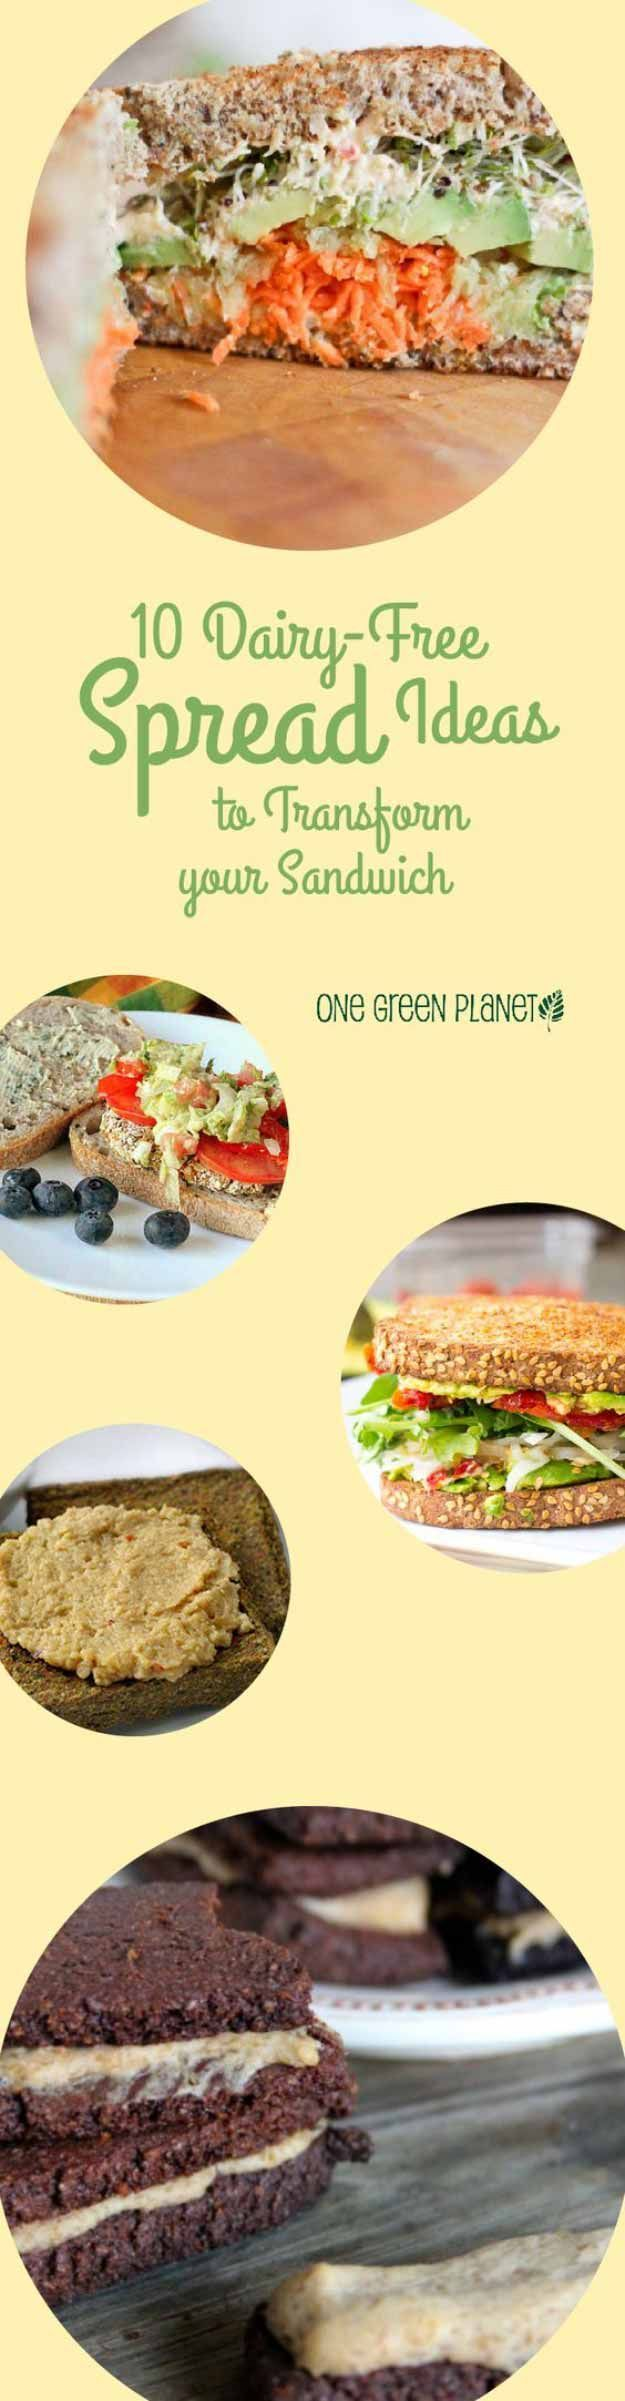 Dairy Free Spreads | 9 Ways To Eat A More Plant Based Diet For Healthy Happy Homesteading | Healthier and Greener Food Ideas by Pioneer Settler at http://pioneersettler.com/plant-based-diet/